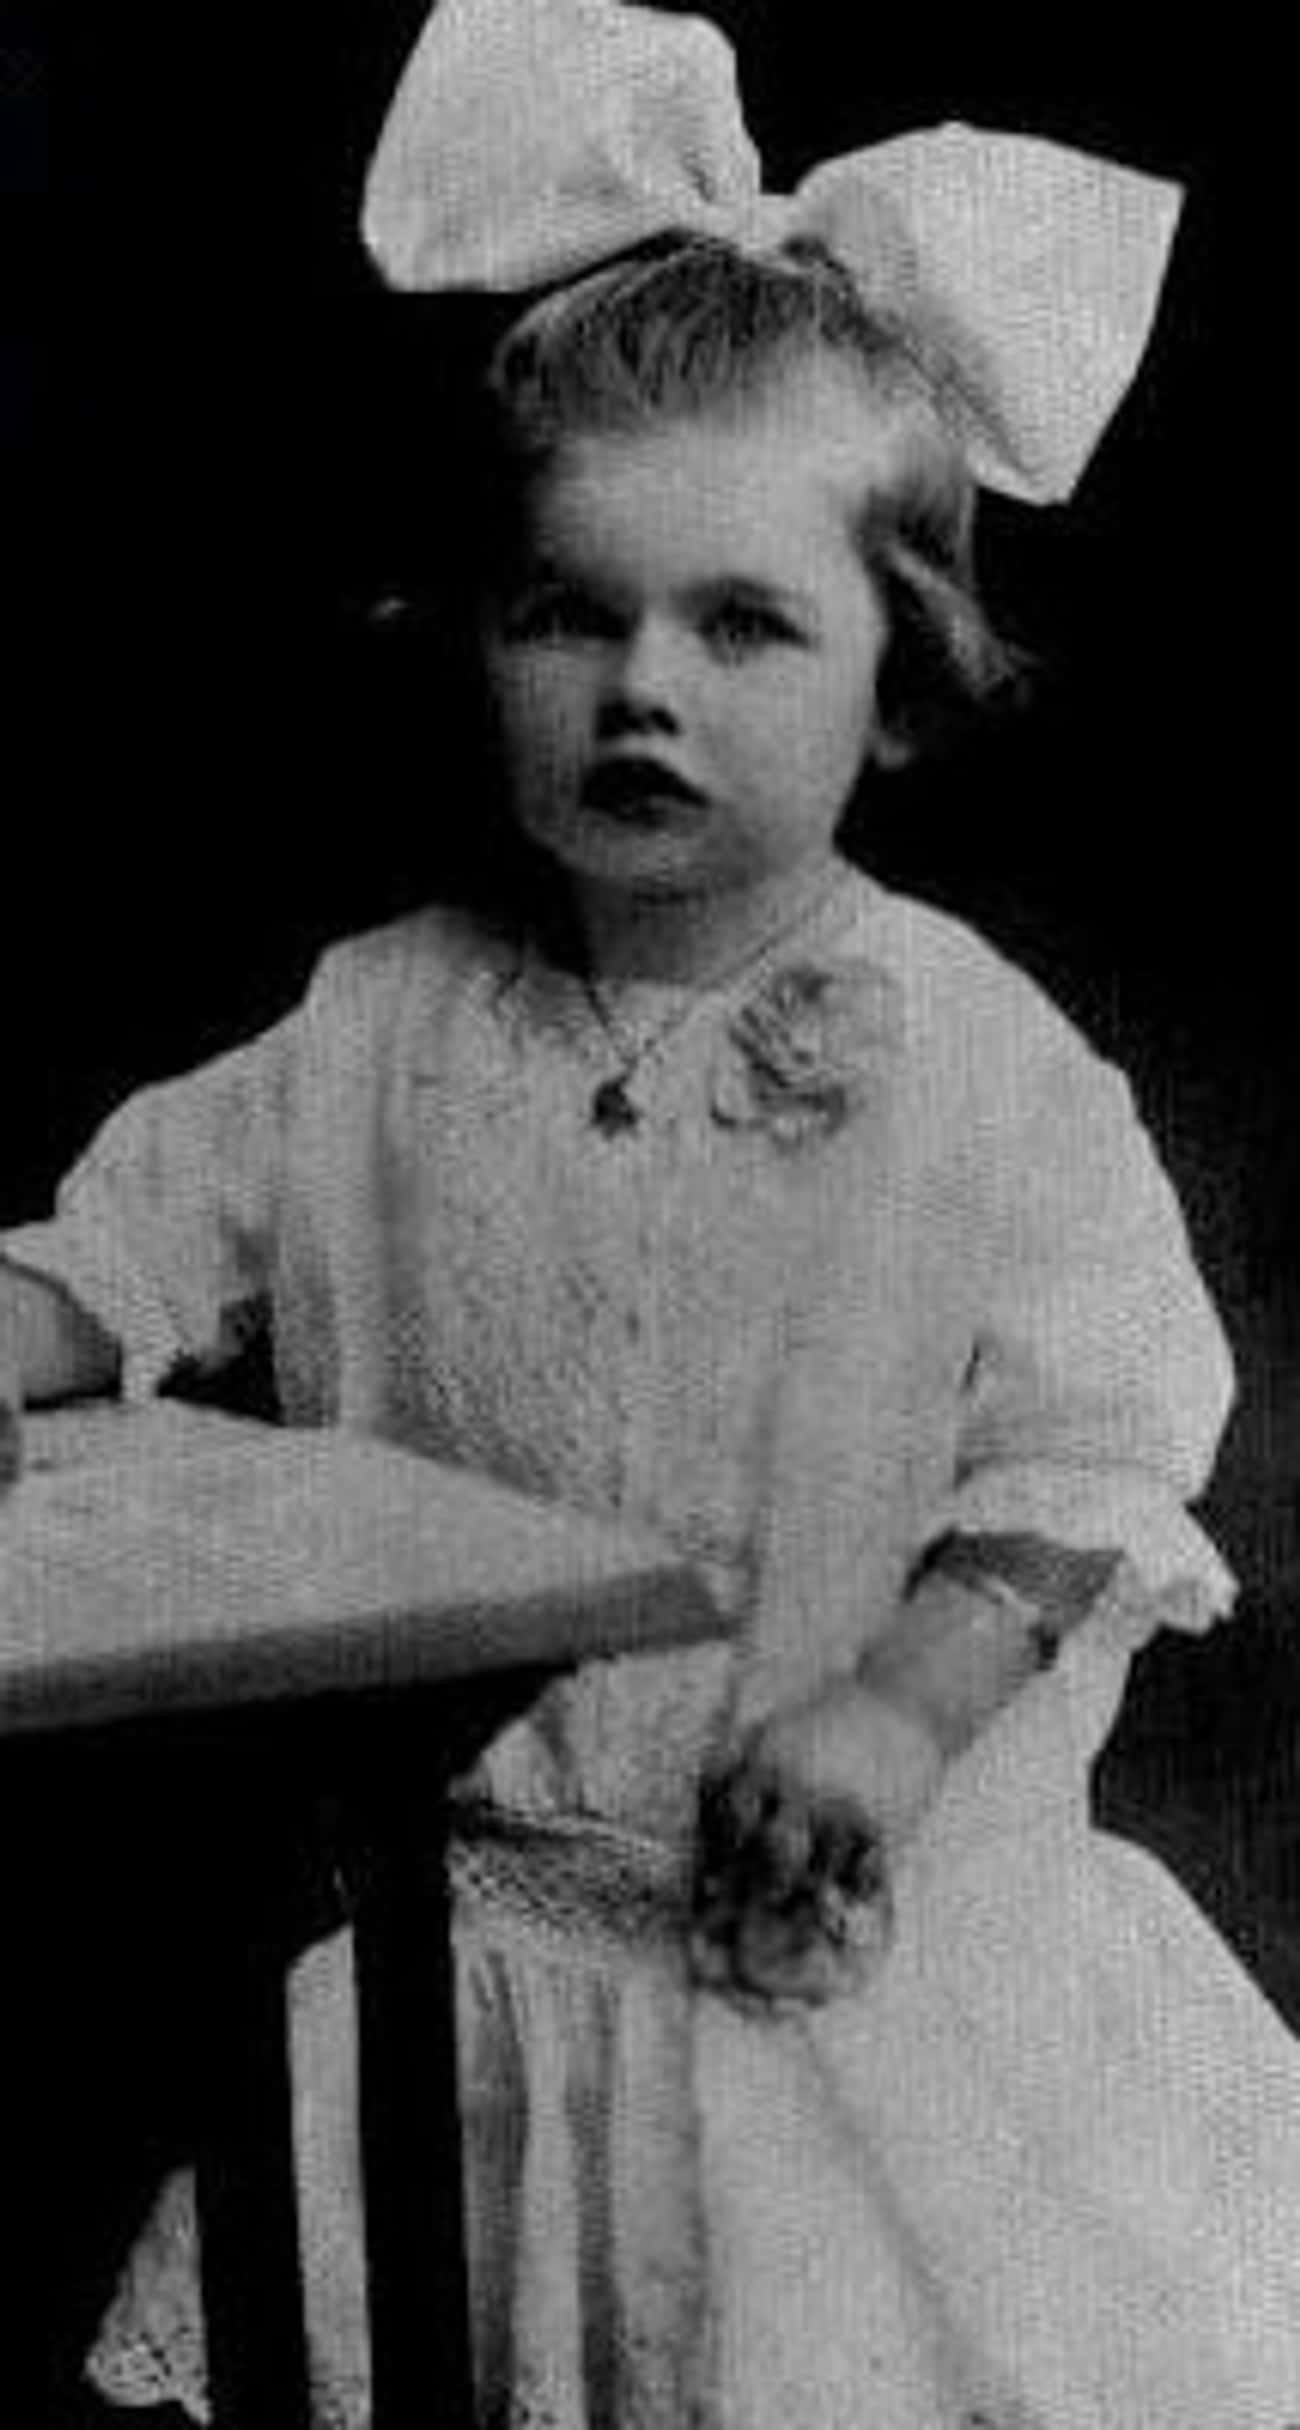 Young Lucille Ball as a Baby is listed (or ranked) 1 on the list 24 Pictures of Young Lucille Ball